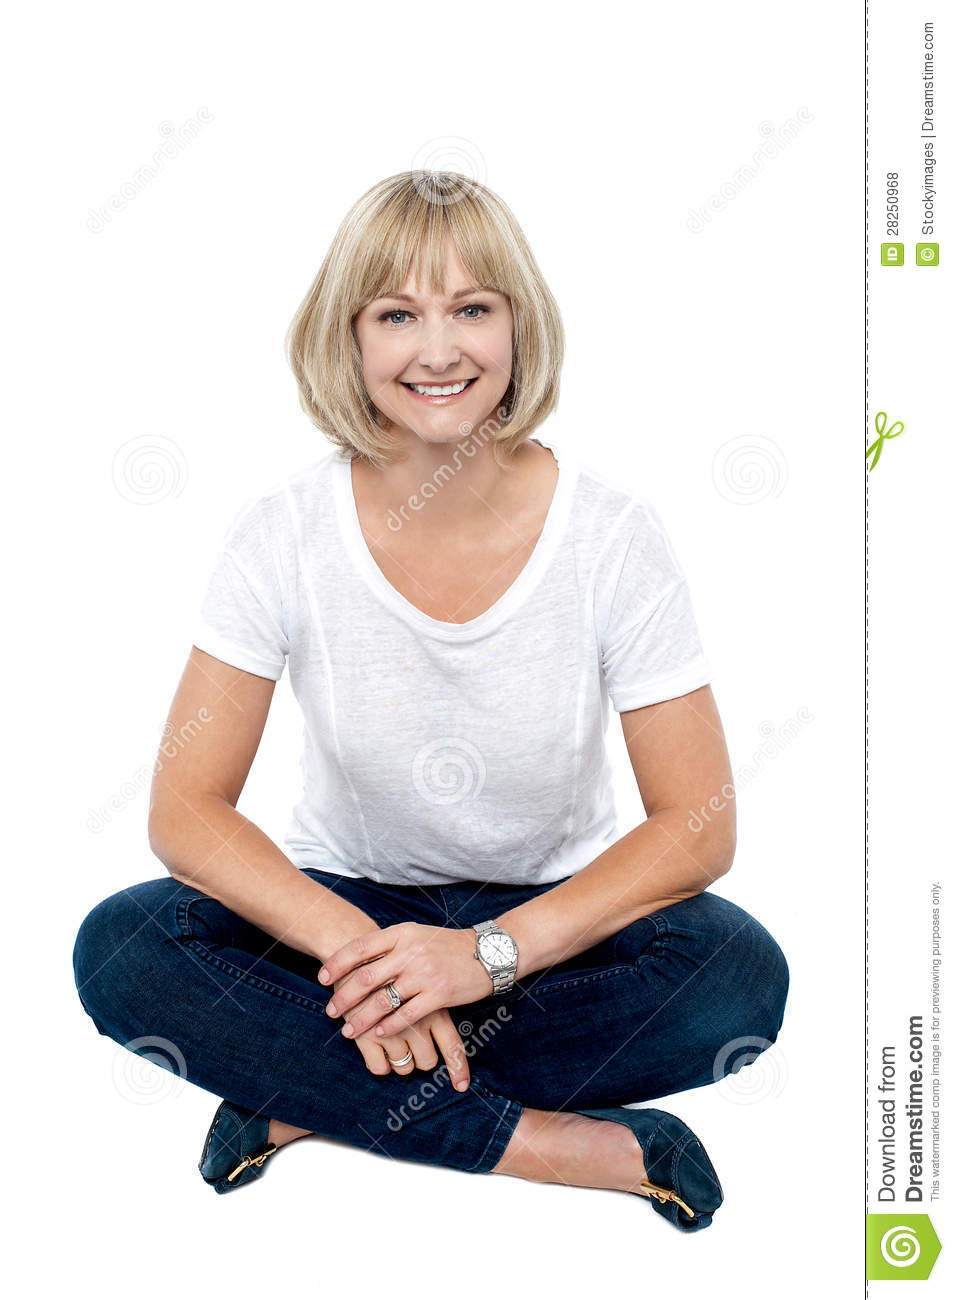 Smiling Middle Aged Woman Sitting On The Floor Royalty